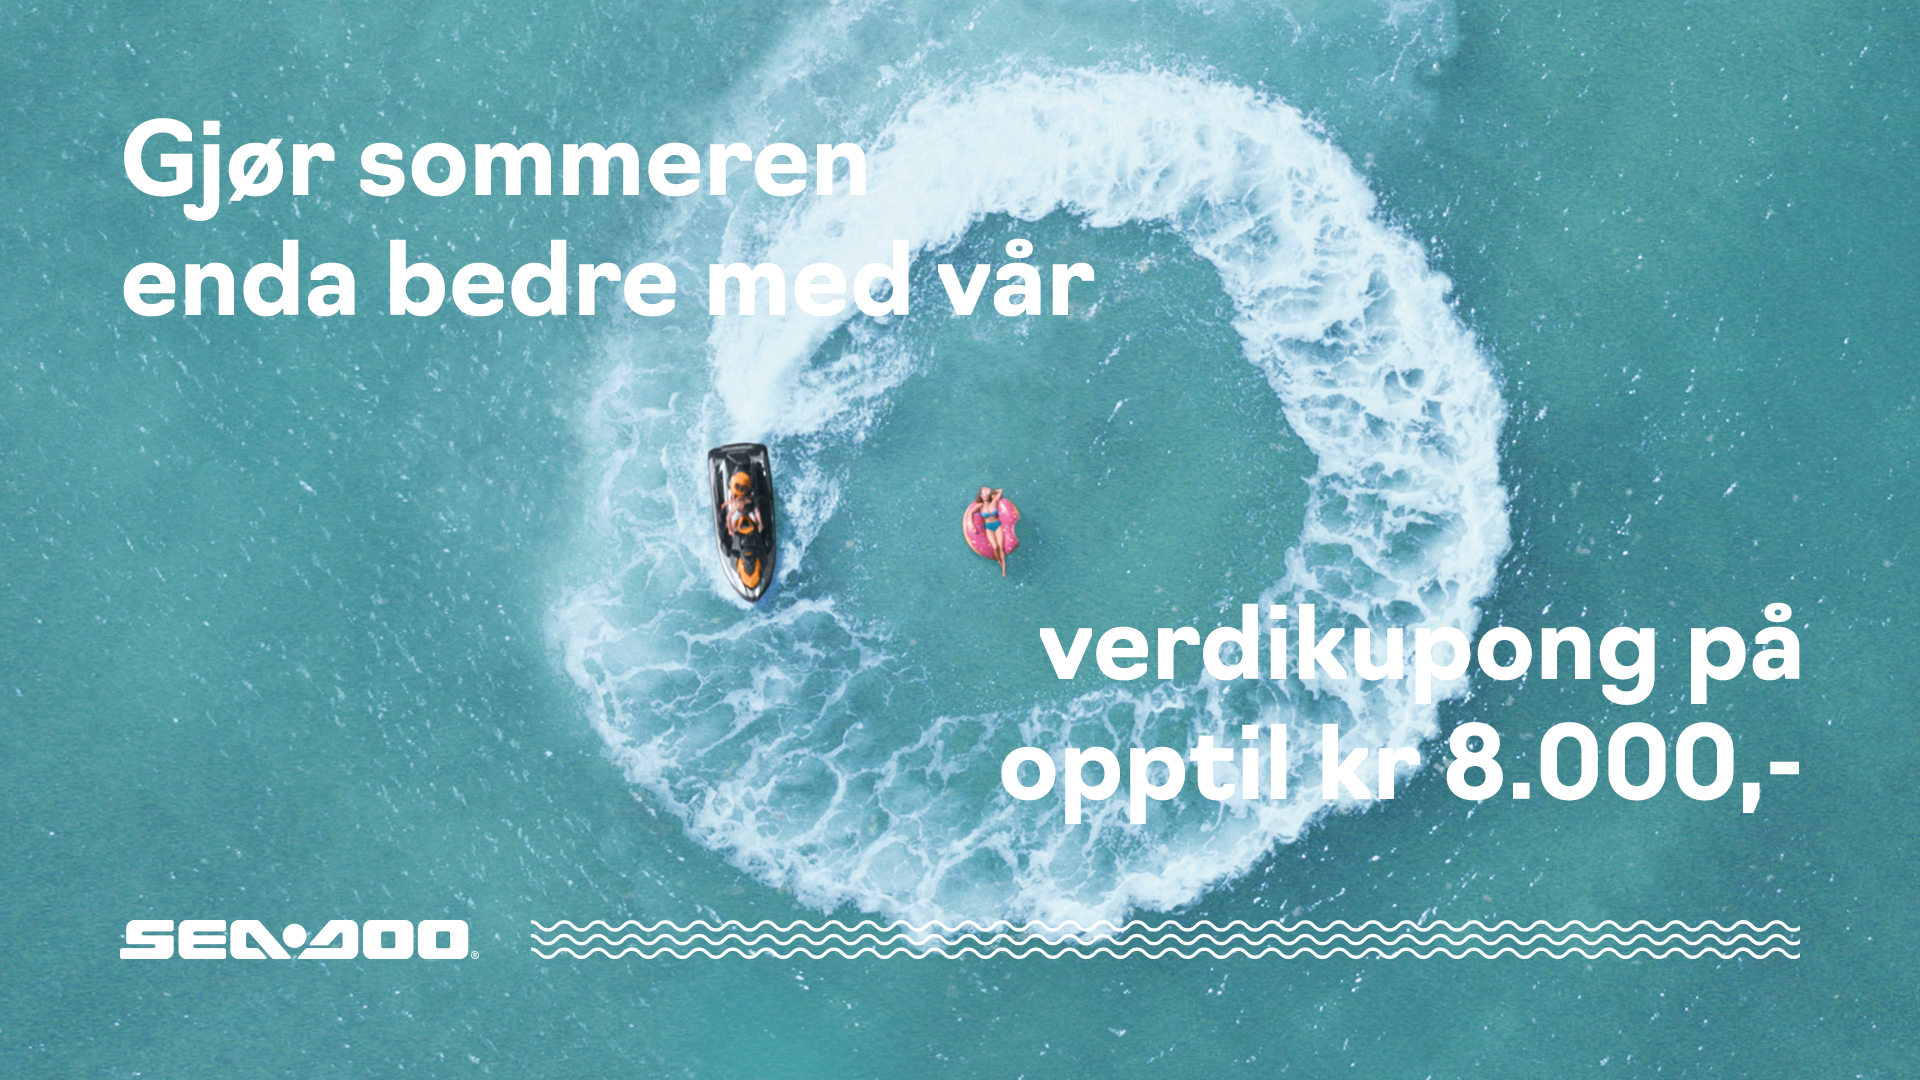 SEA_DOO_NORWAY_Early_Wave_Offer_1920x1080